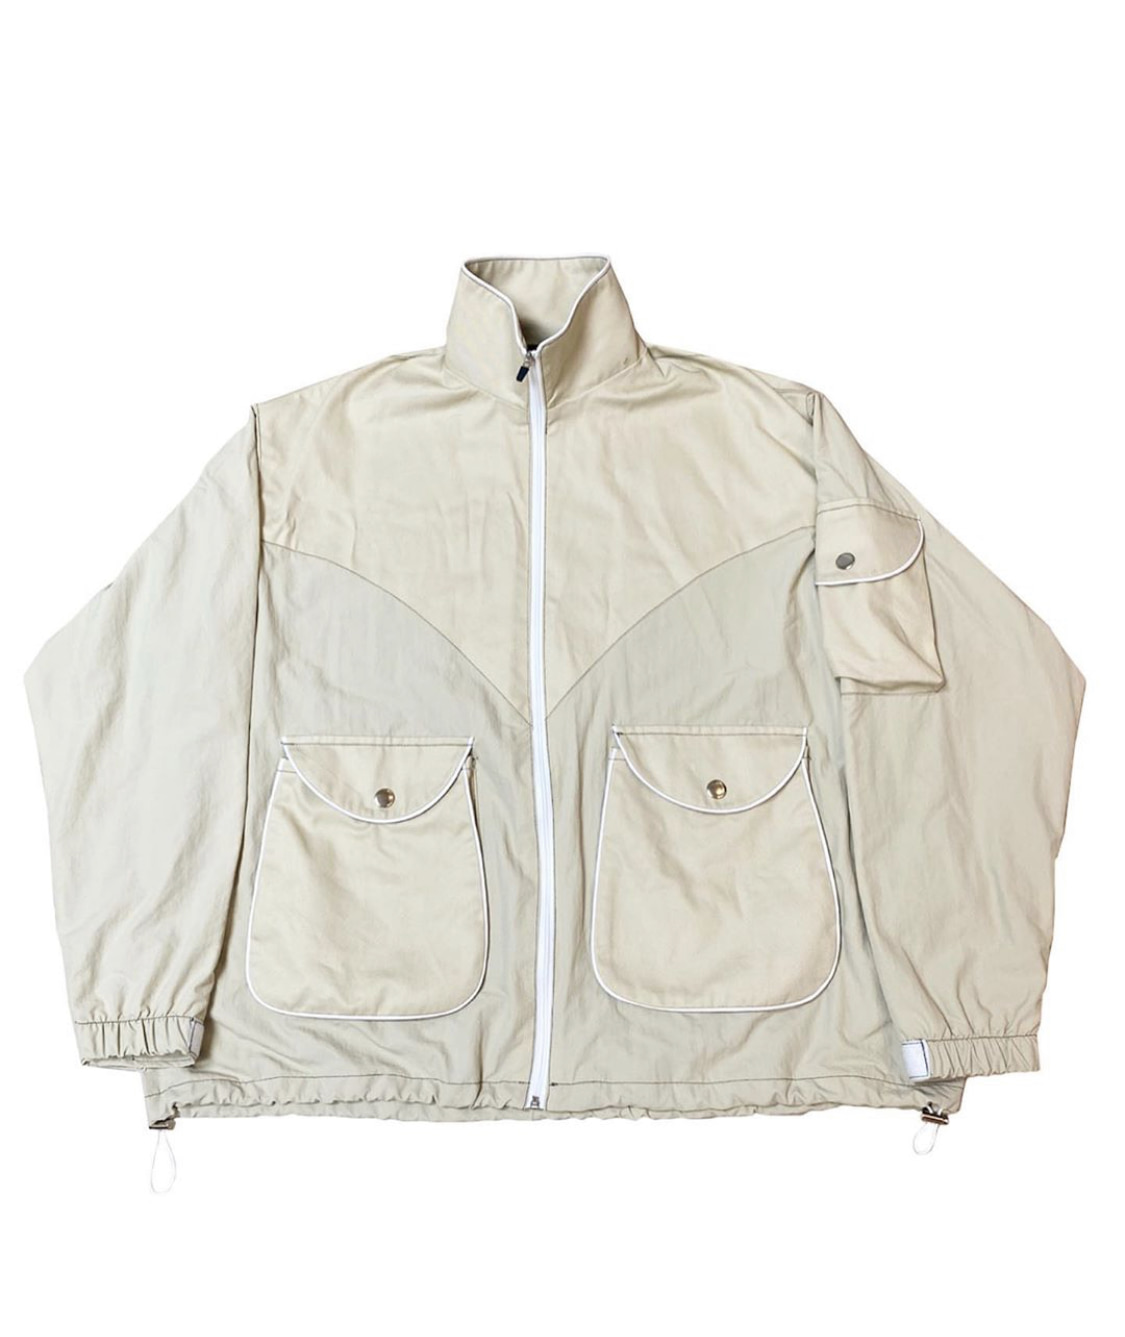 beige 2 color Jacket